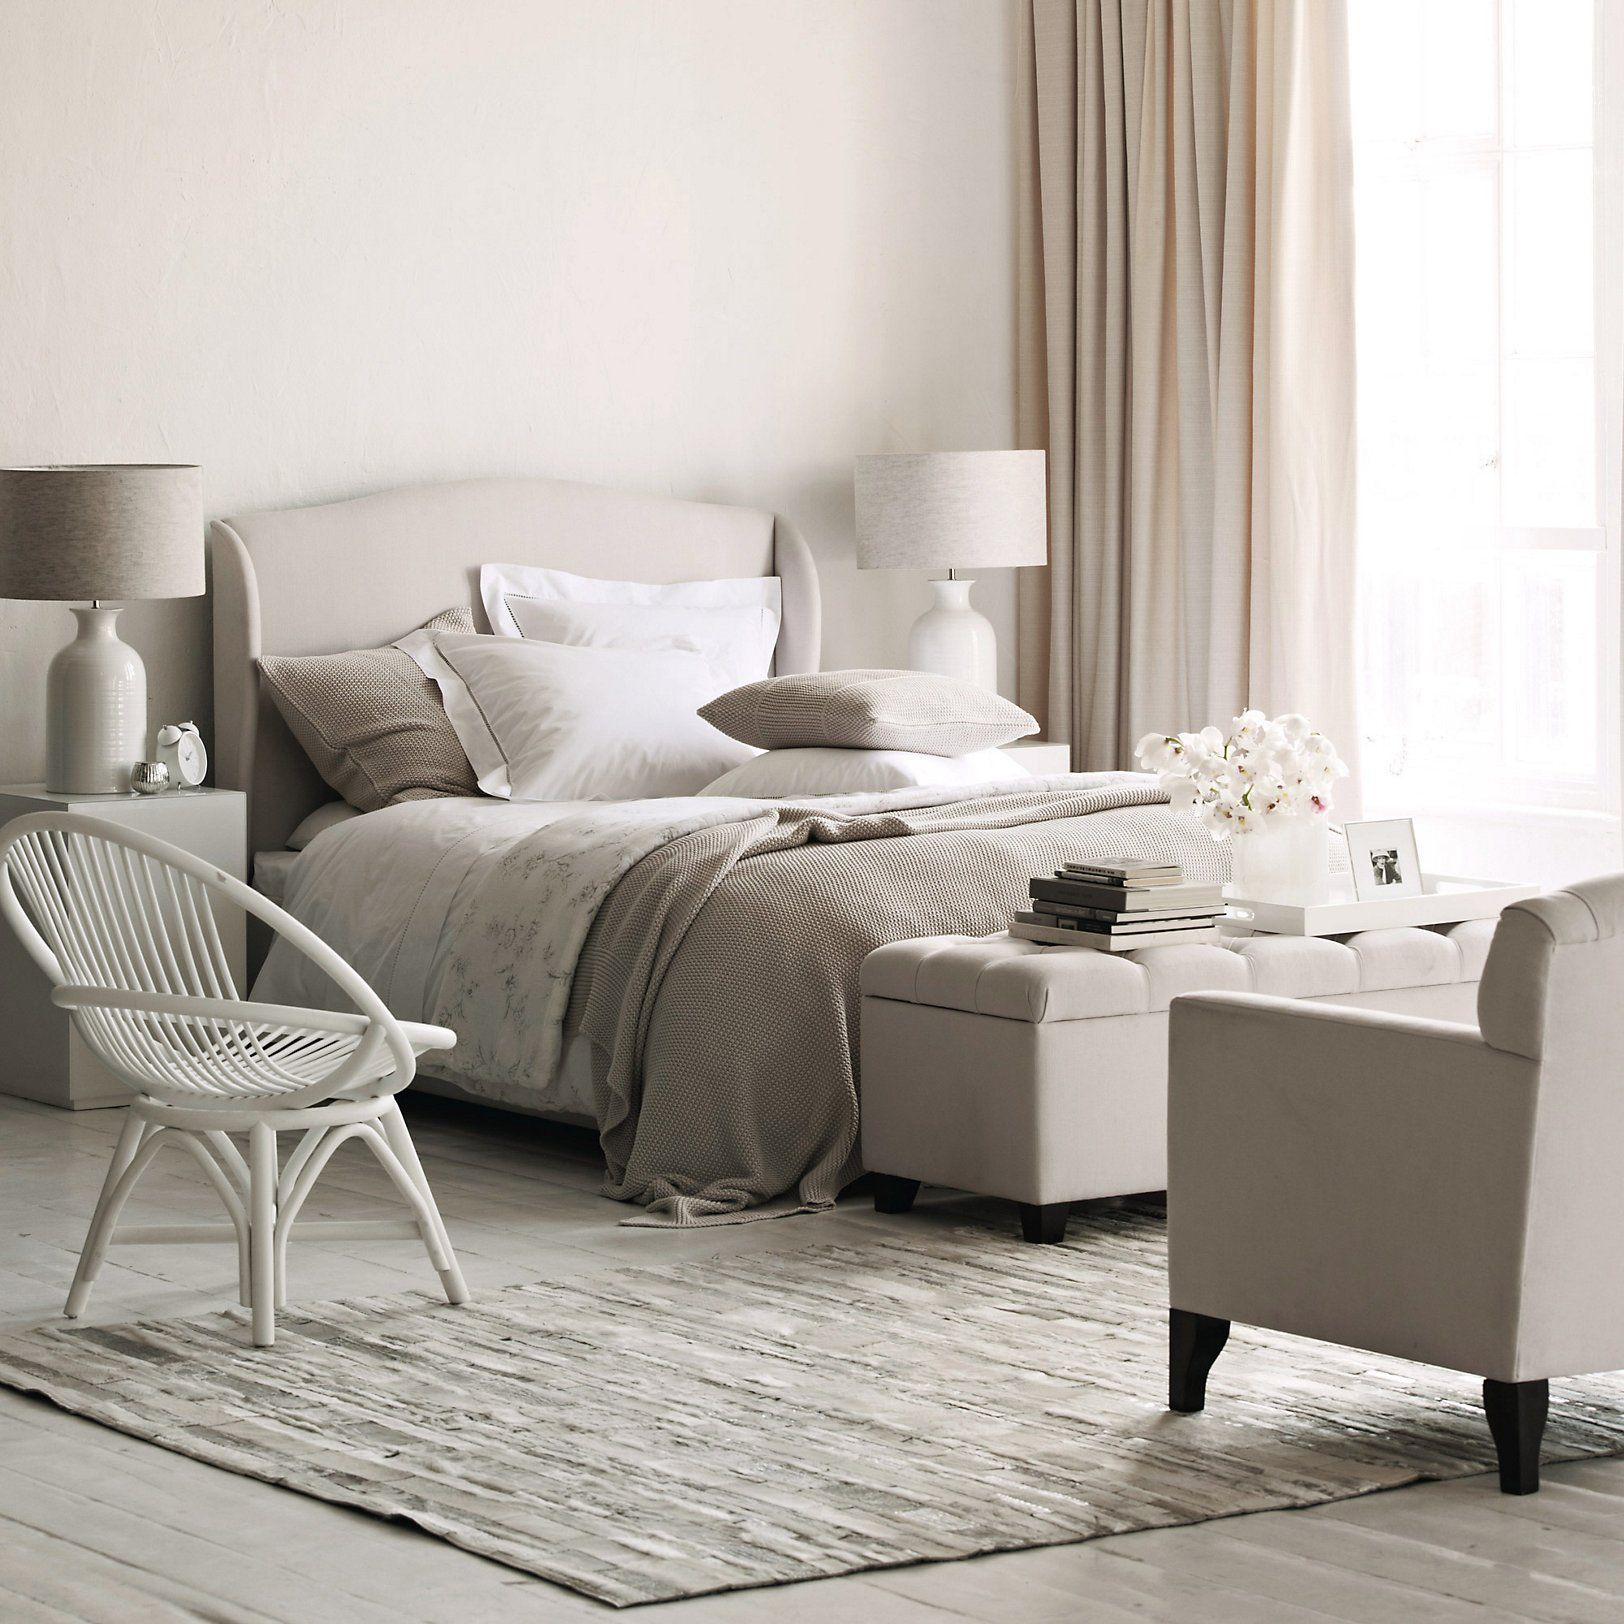 Best Newport Collection View All Bedding The White Company 640 x 480